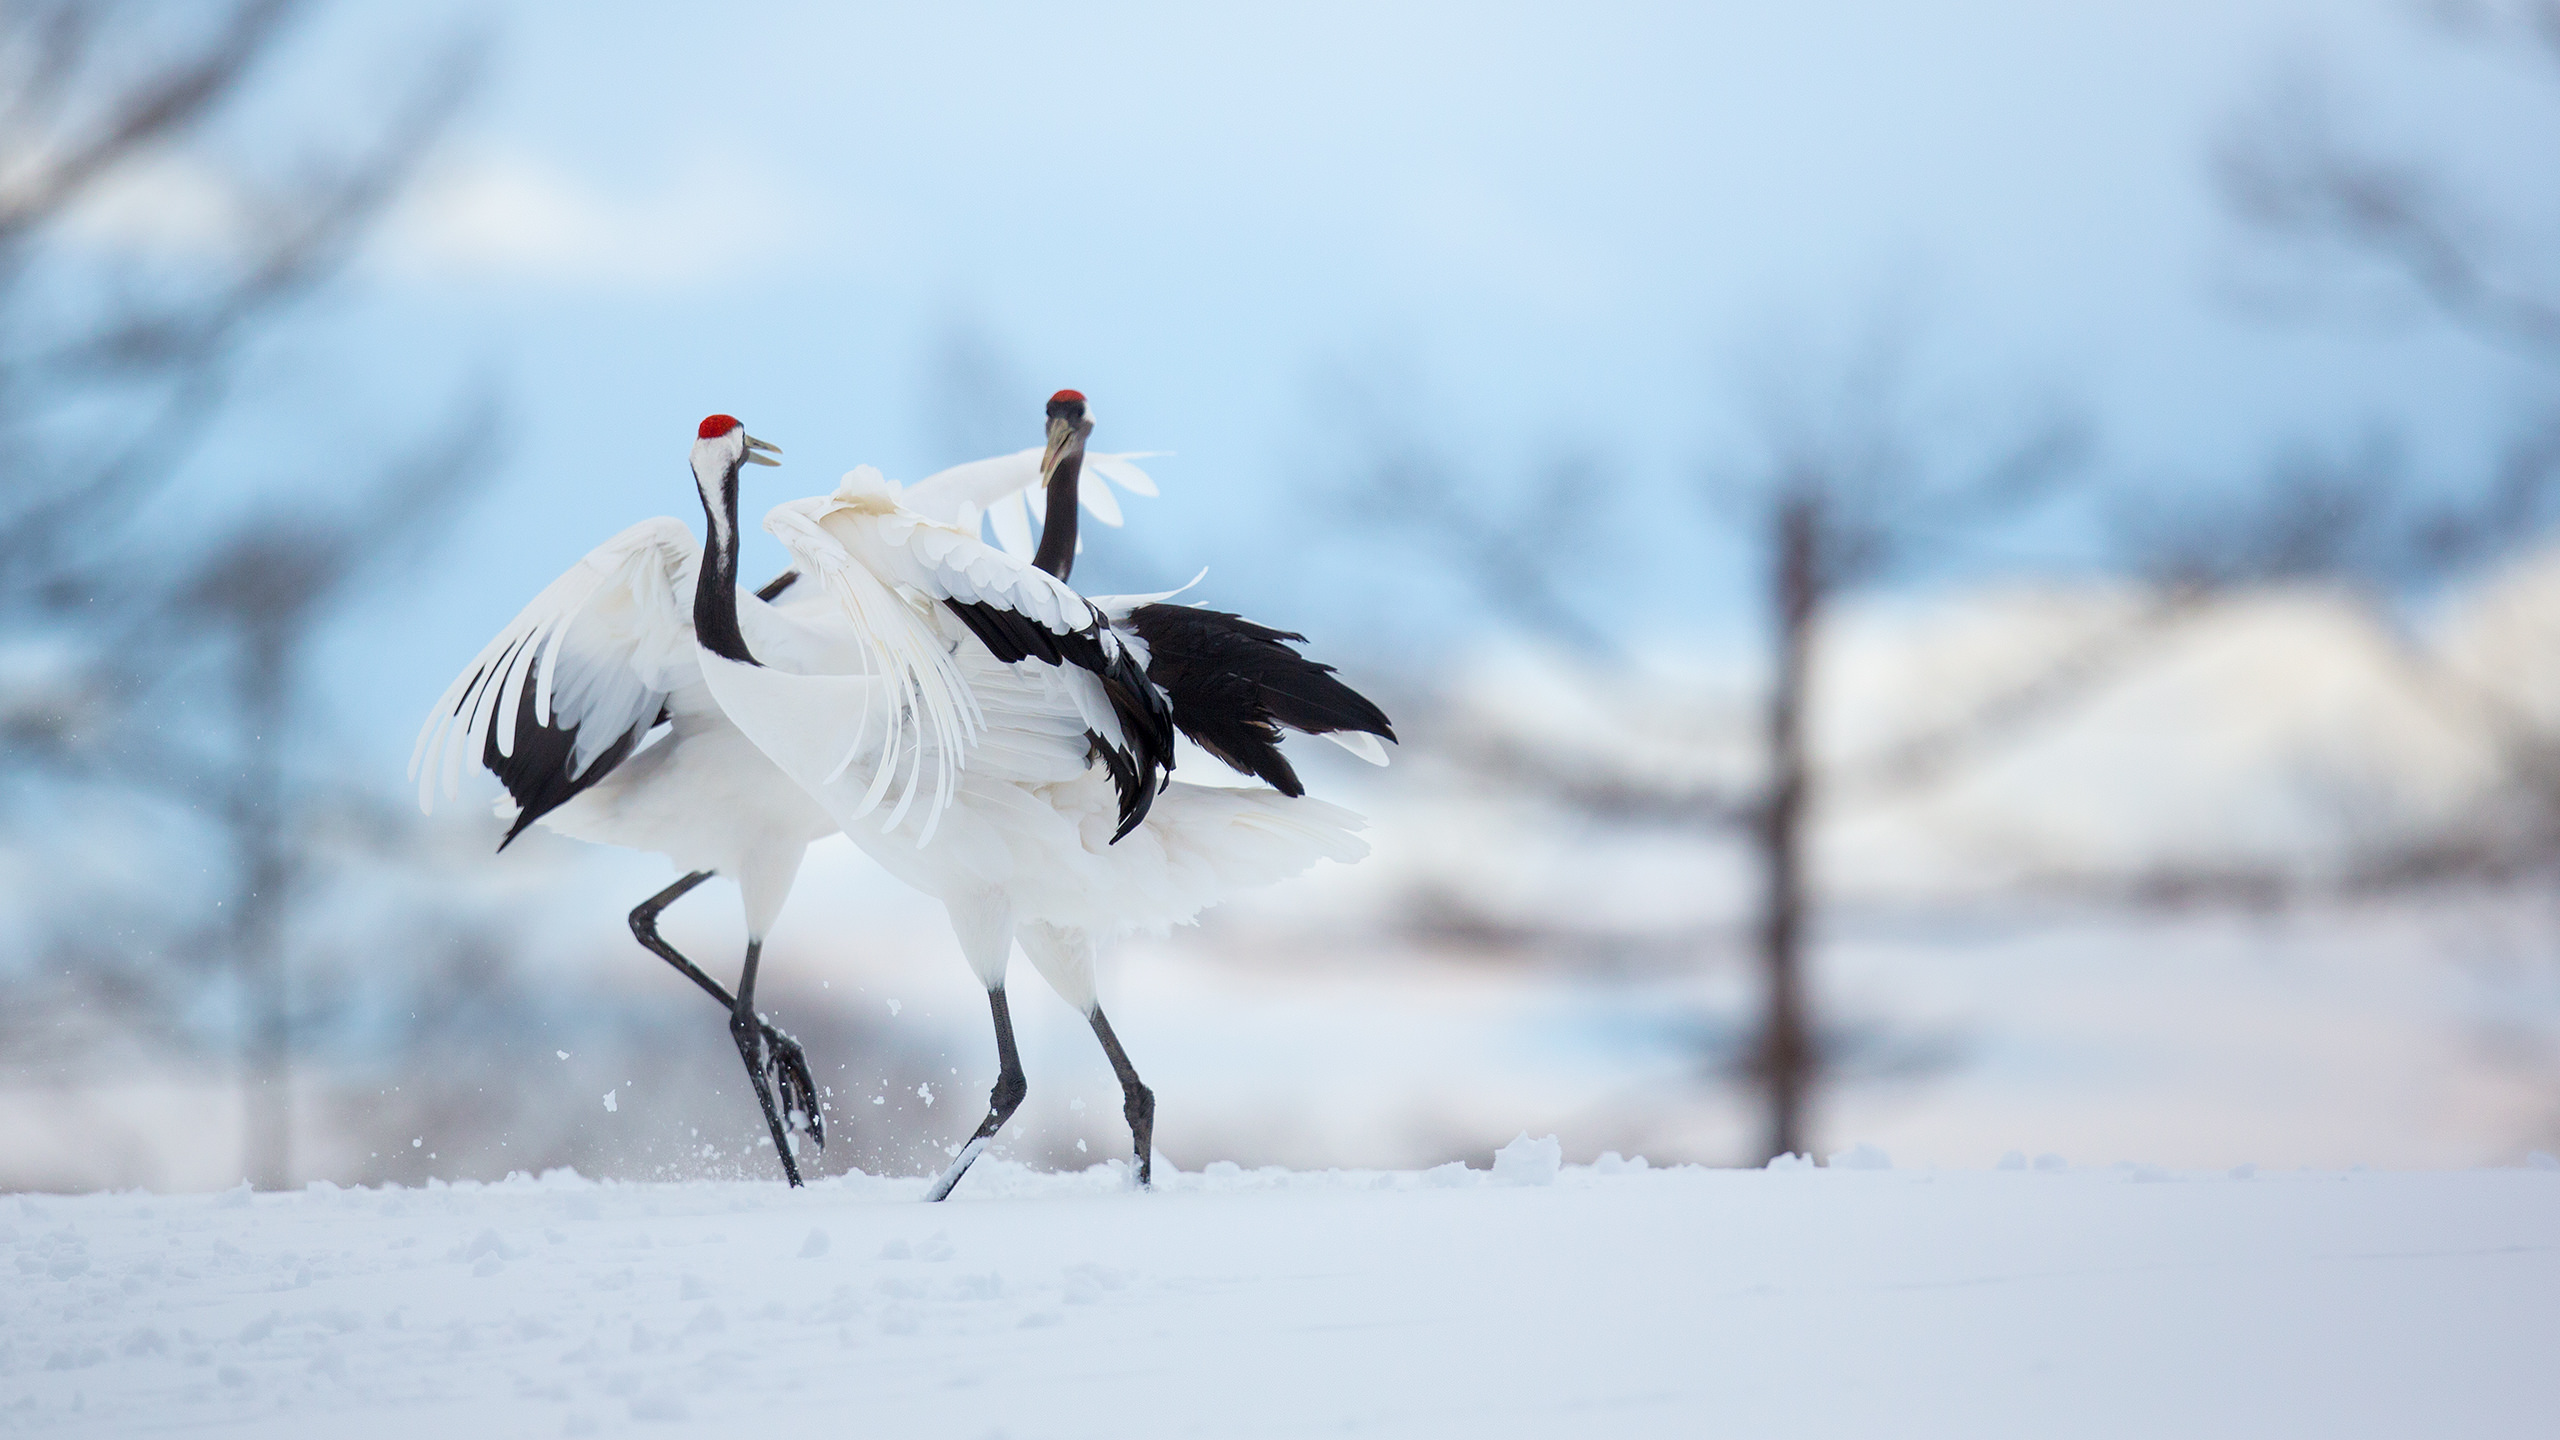 Red Crowned Crane in Japan by Arindam Bhattacharya